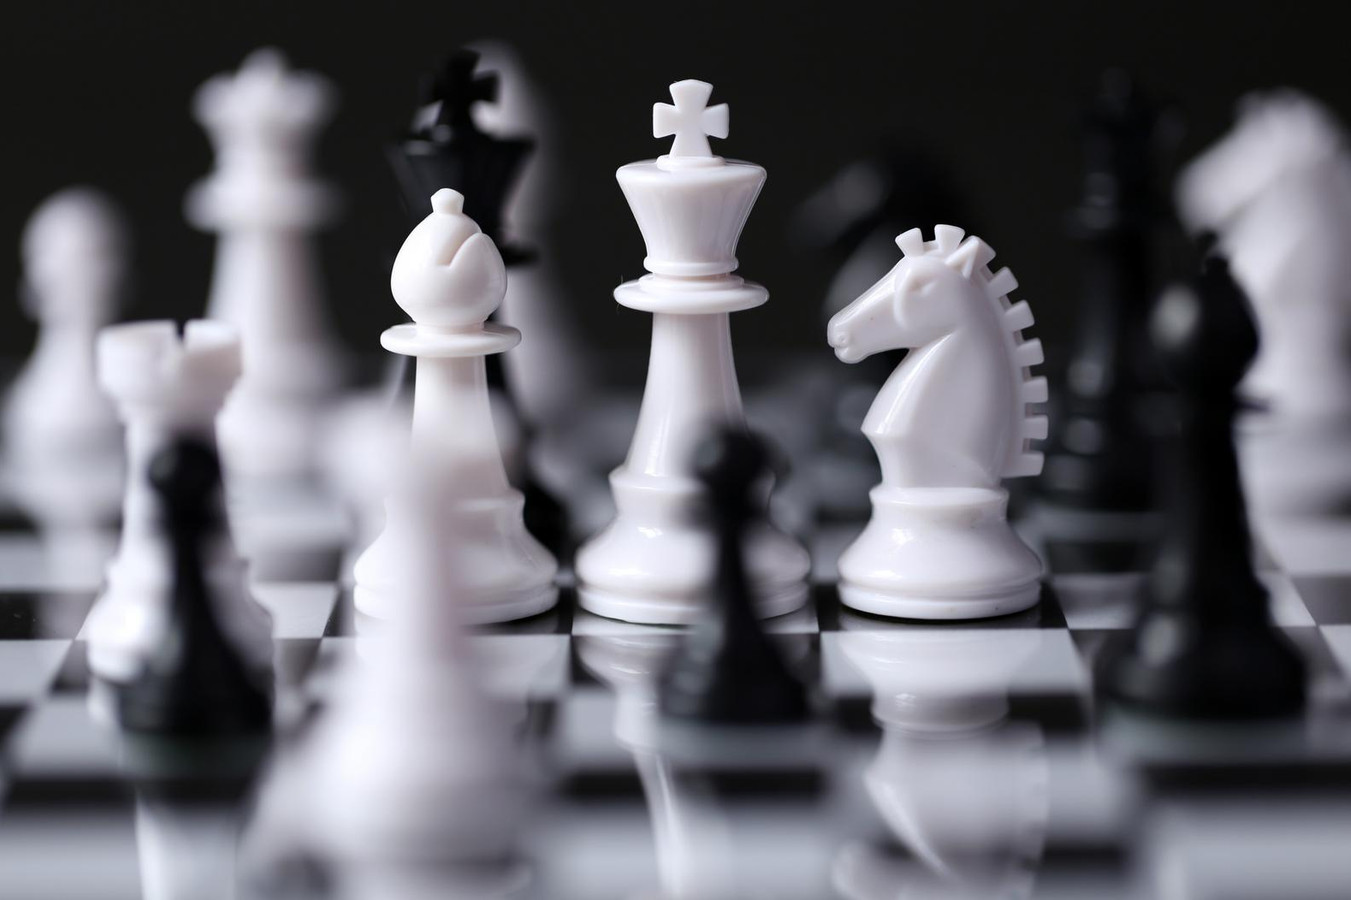 Chess piece on a chess board, black and white